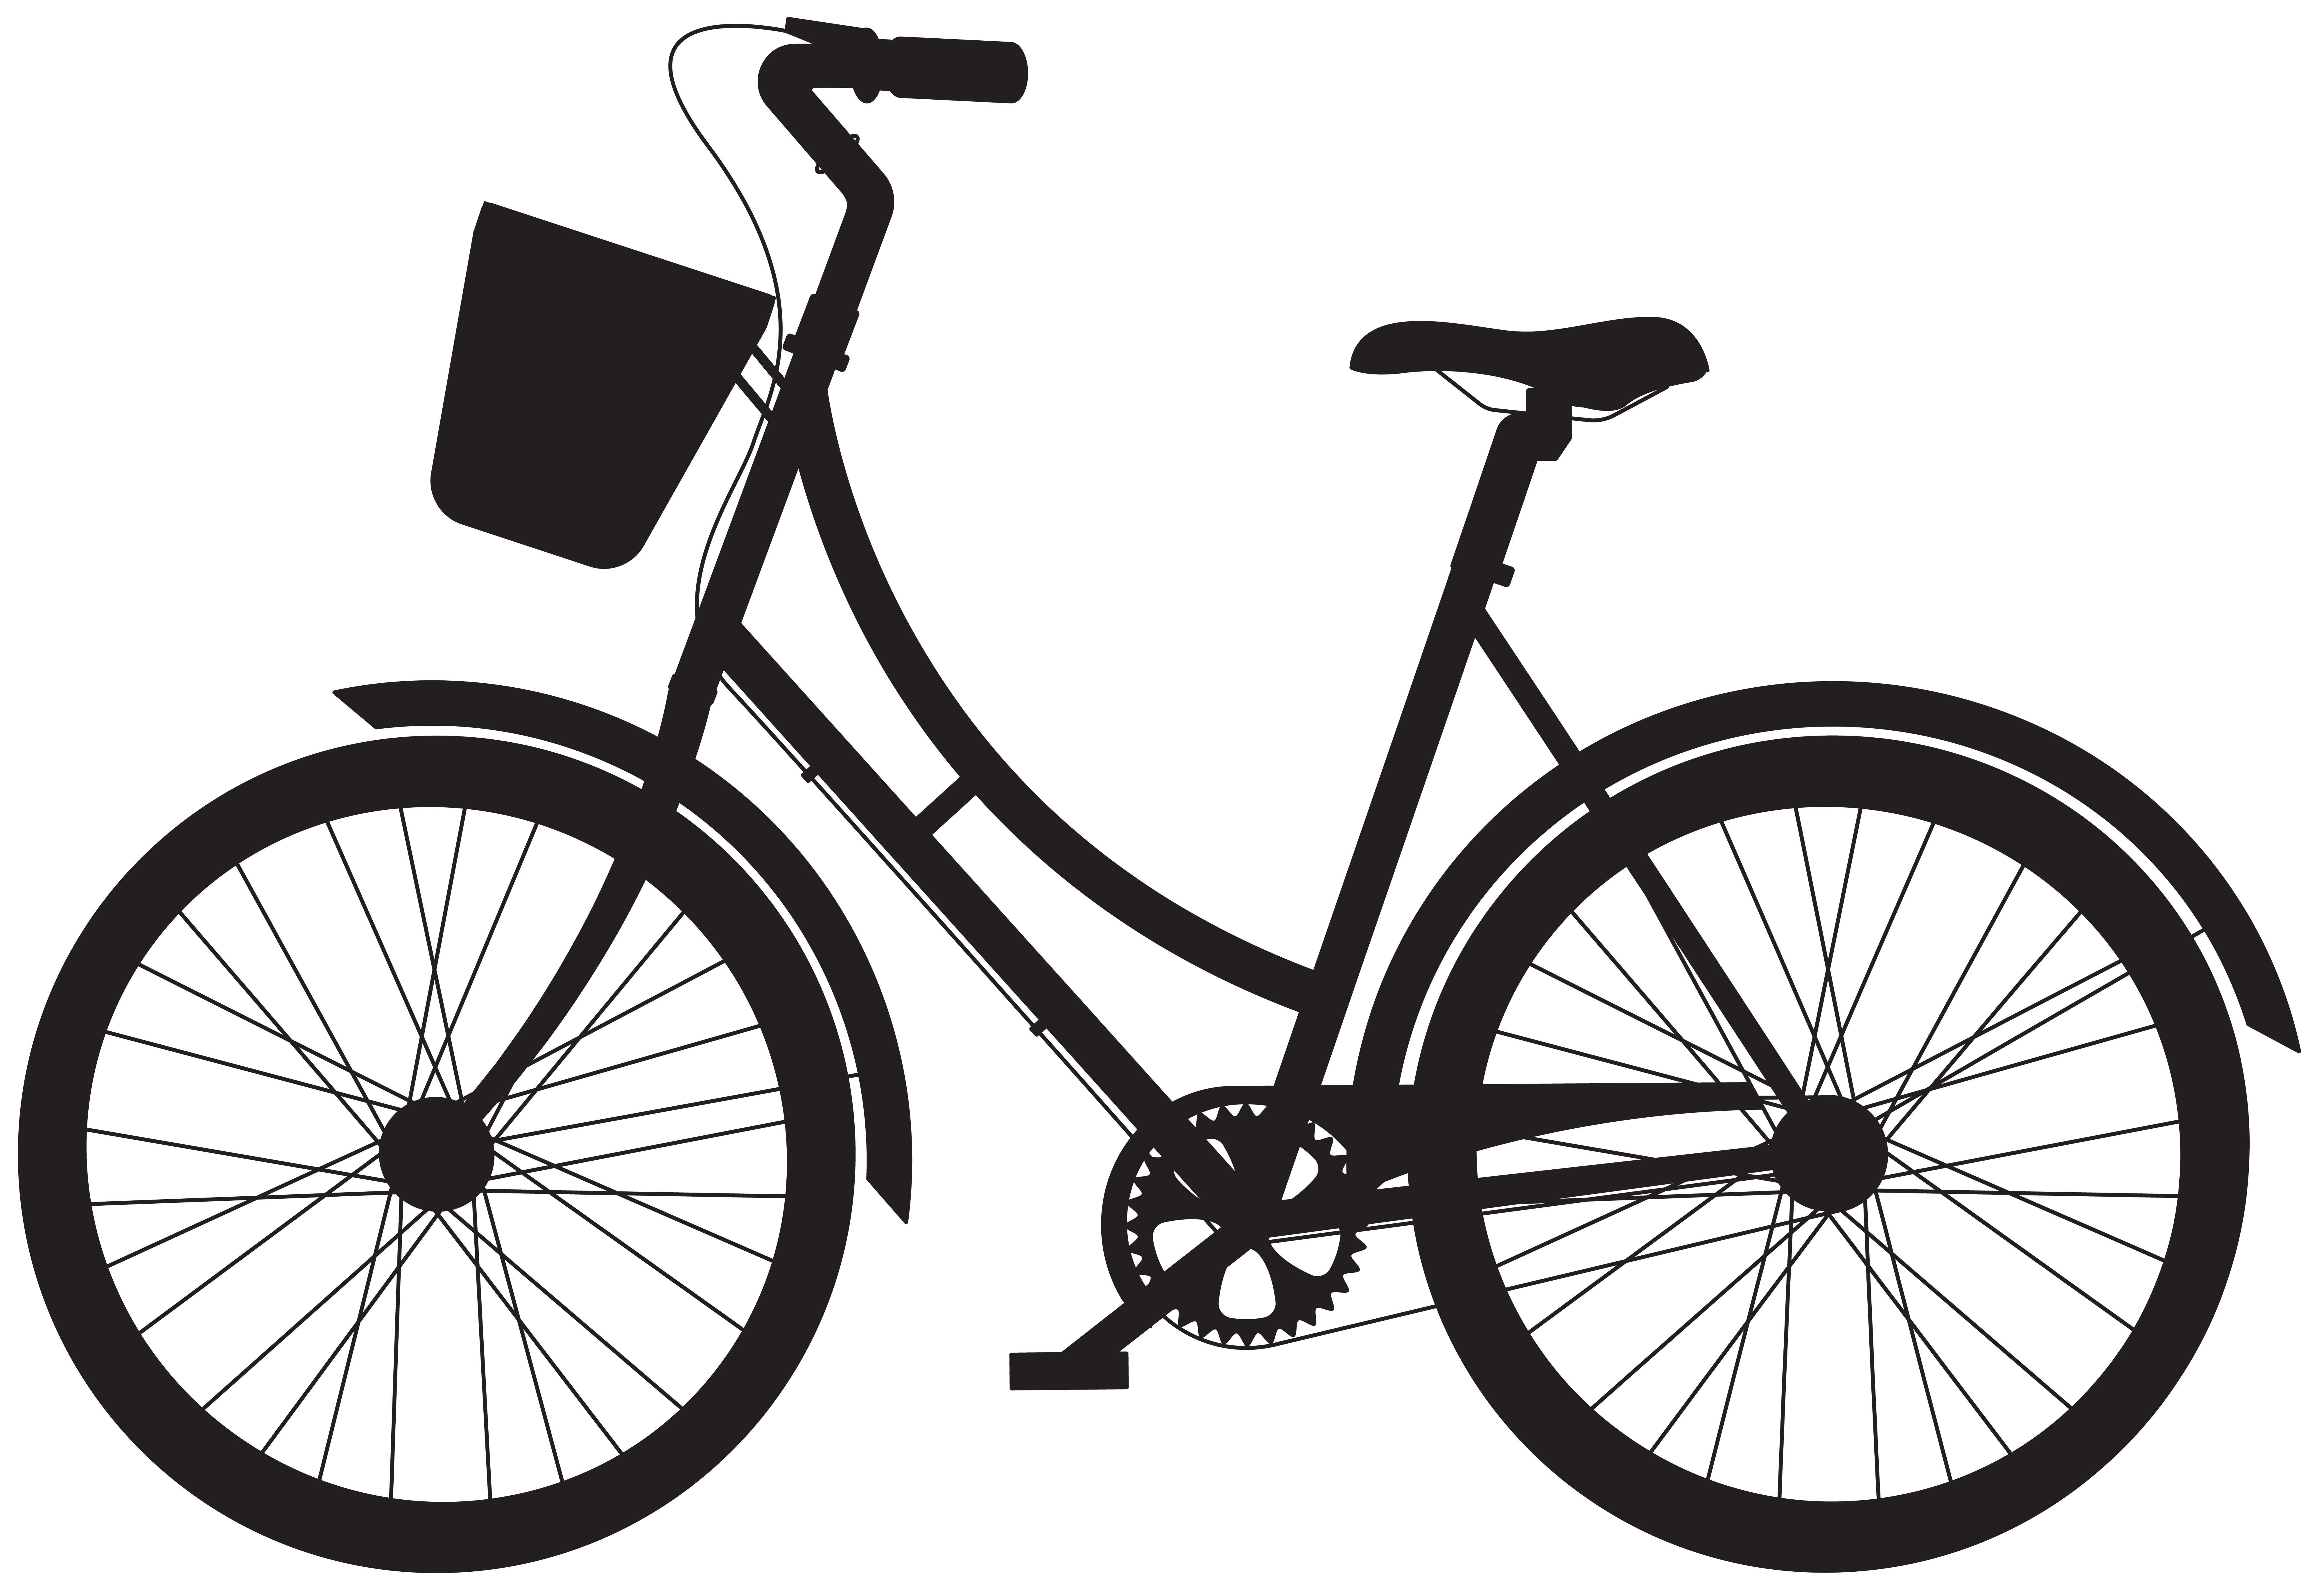 Clipart flower basket silhouette black and white banner transparent stock Bicycle with Basket Silhouette PNG Clip Art | Gallery Yopriceville ... banner transparent stock